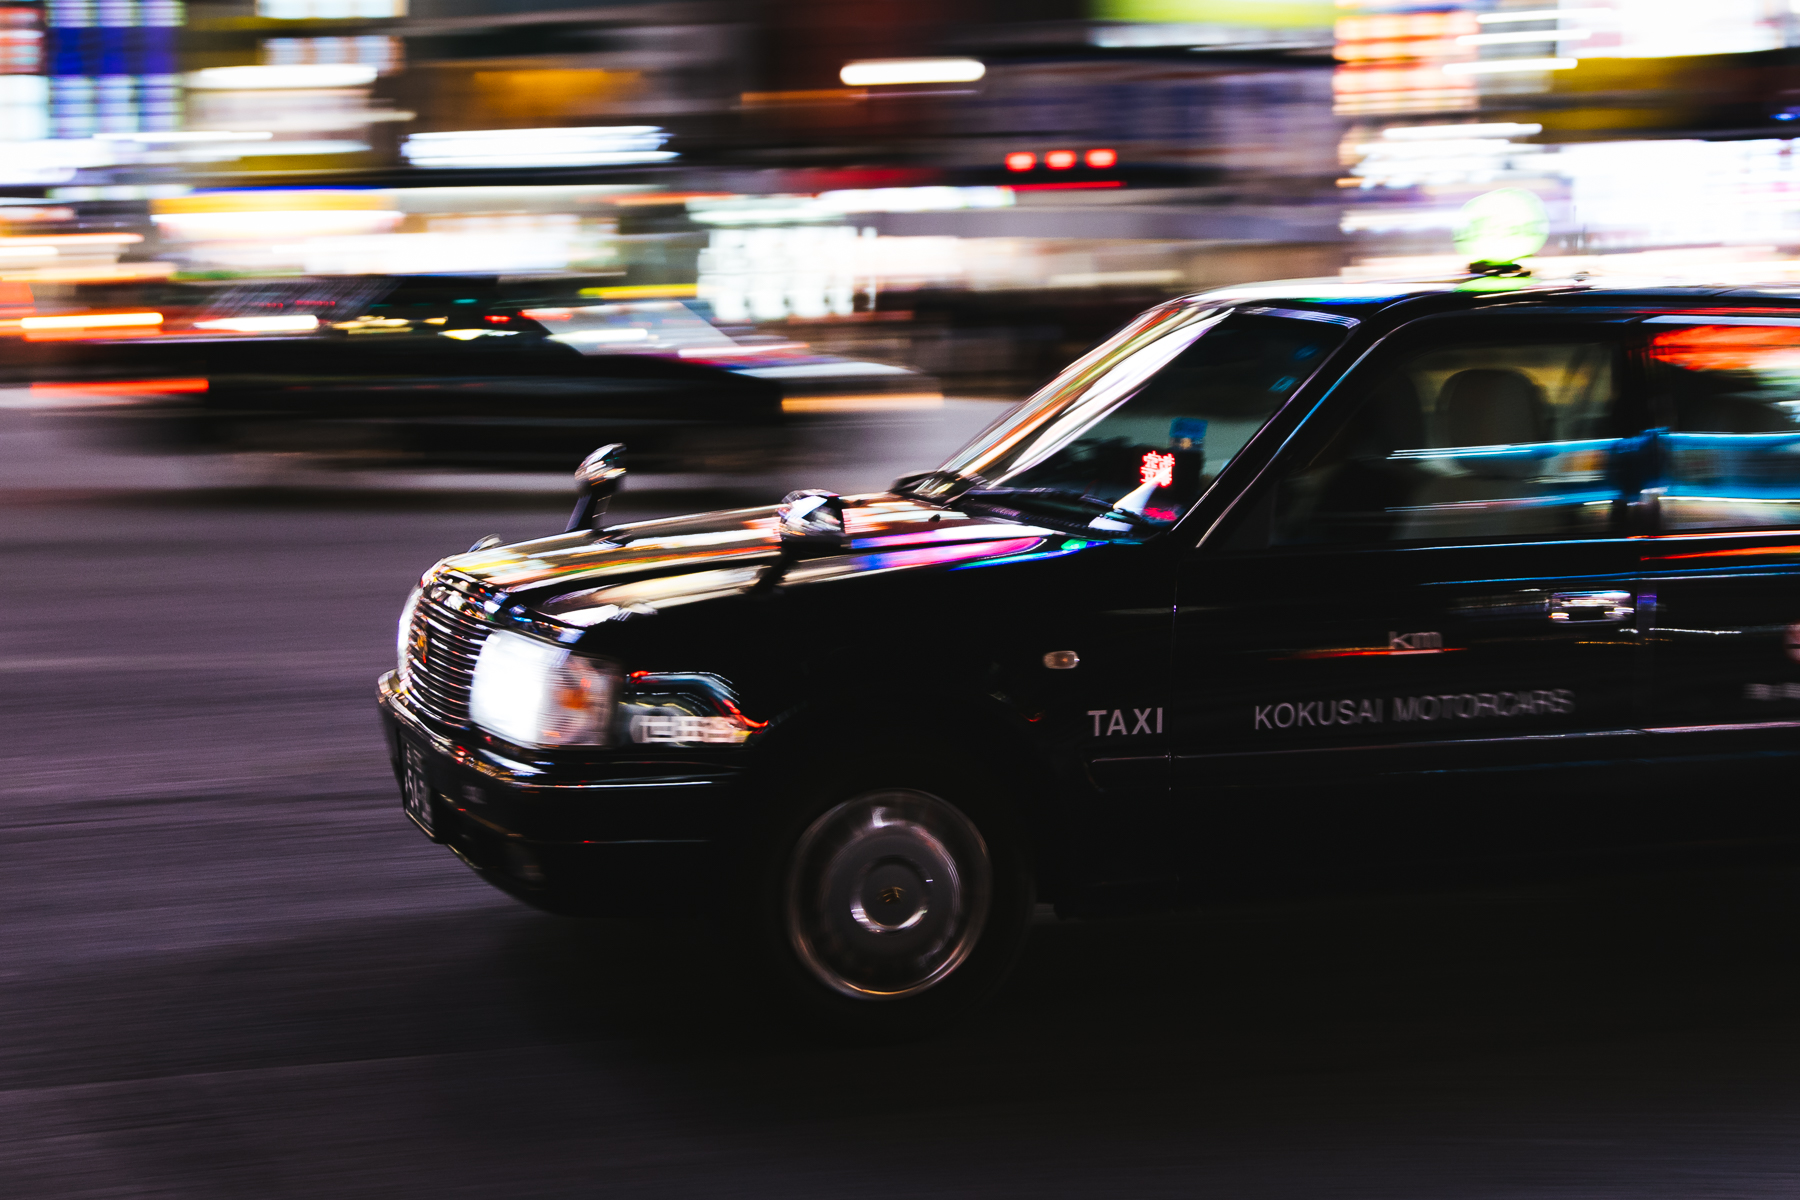 panning-tokyo-taxis.jpg